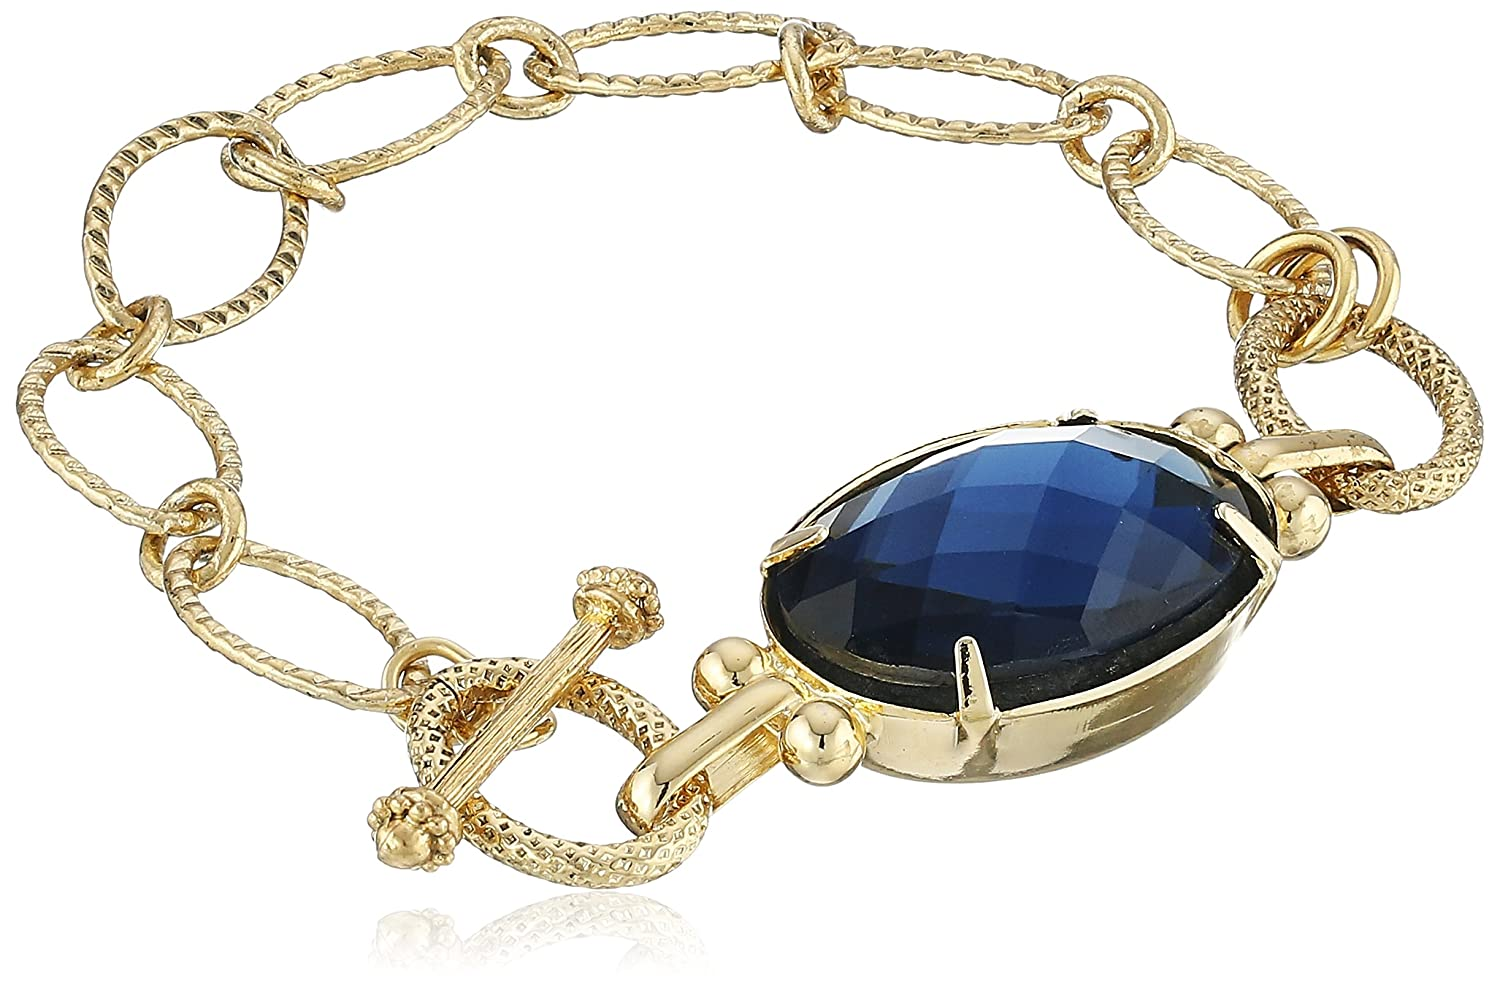 1928 Jewelry Gold-Tone Toggle Bracelet with Blue Pendant